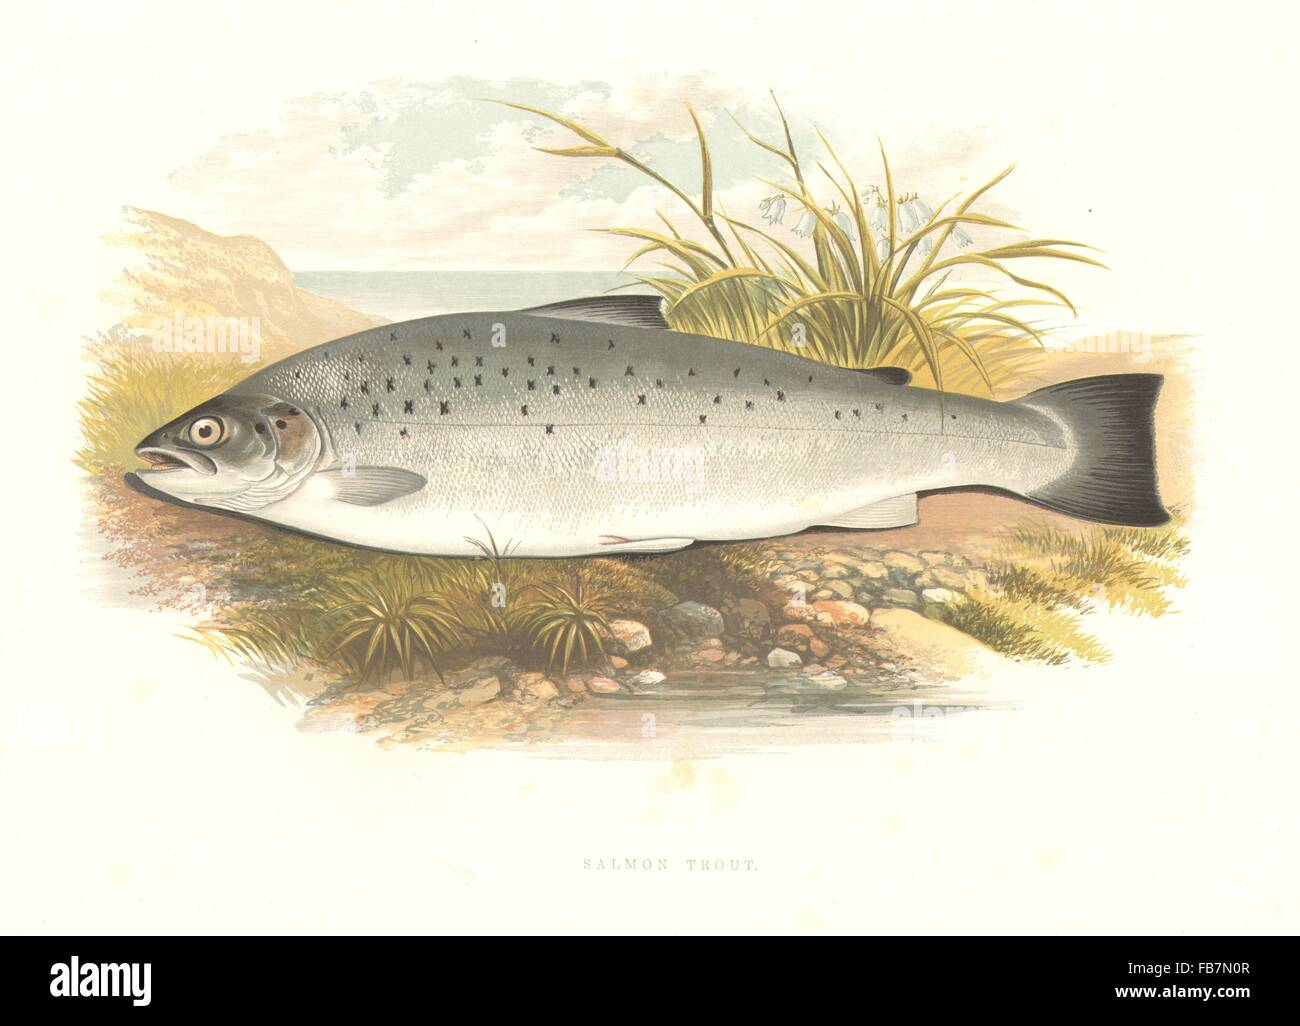 W Pike print from the book freshwater fishes Houghton perfect for framing